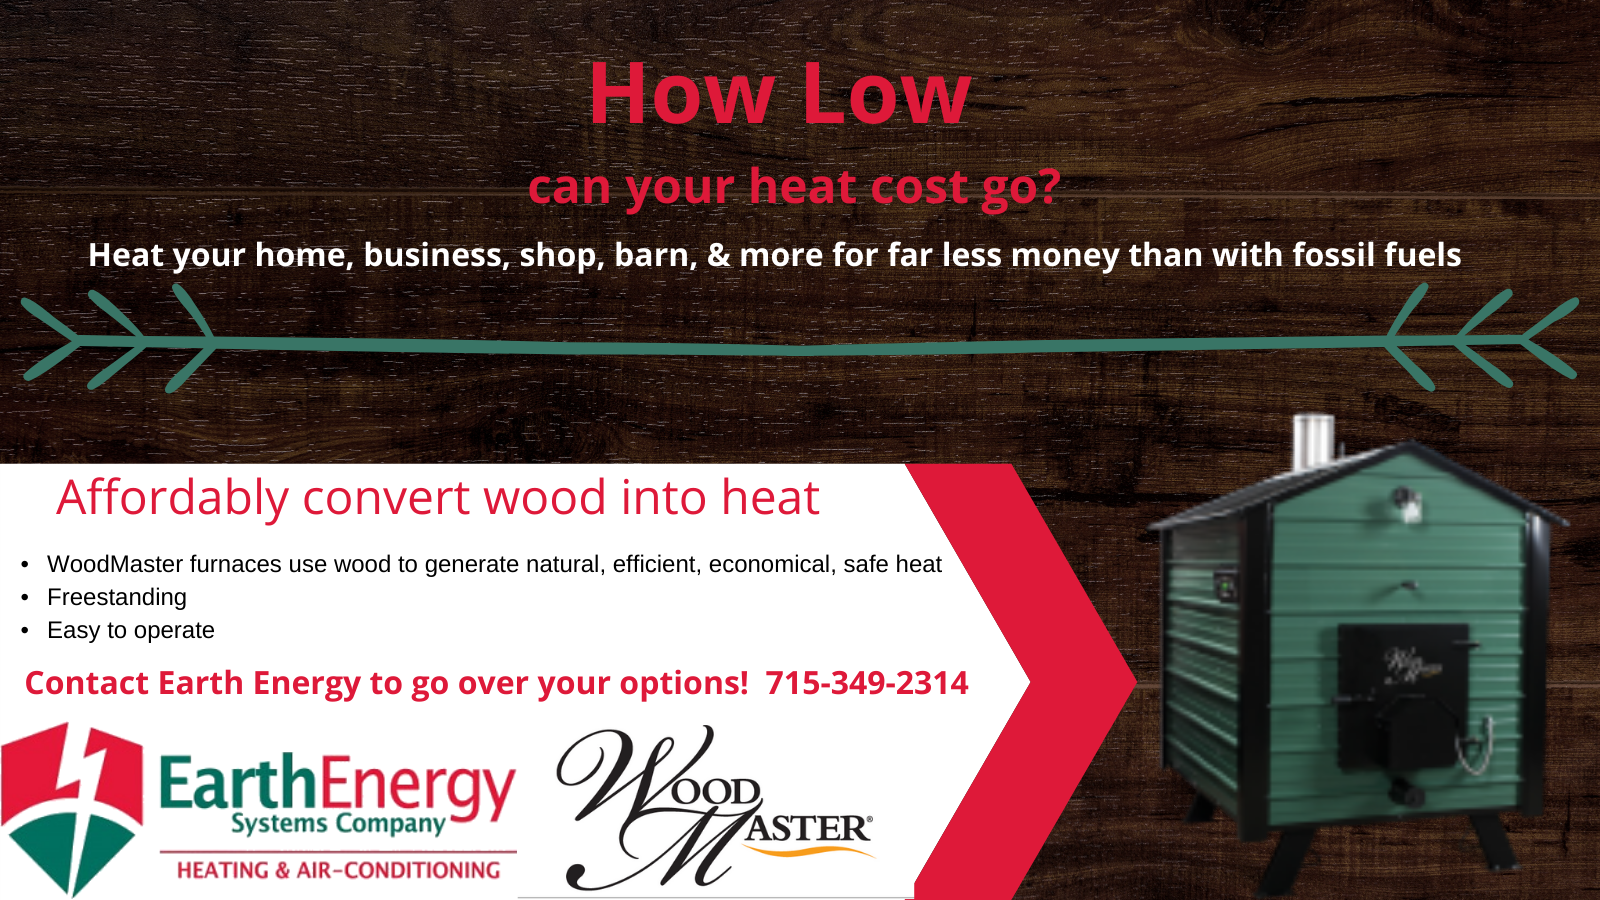 Affordably convert wood into heat